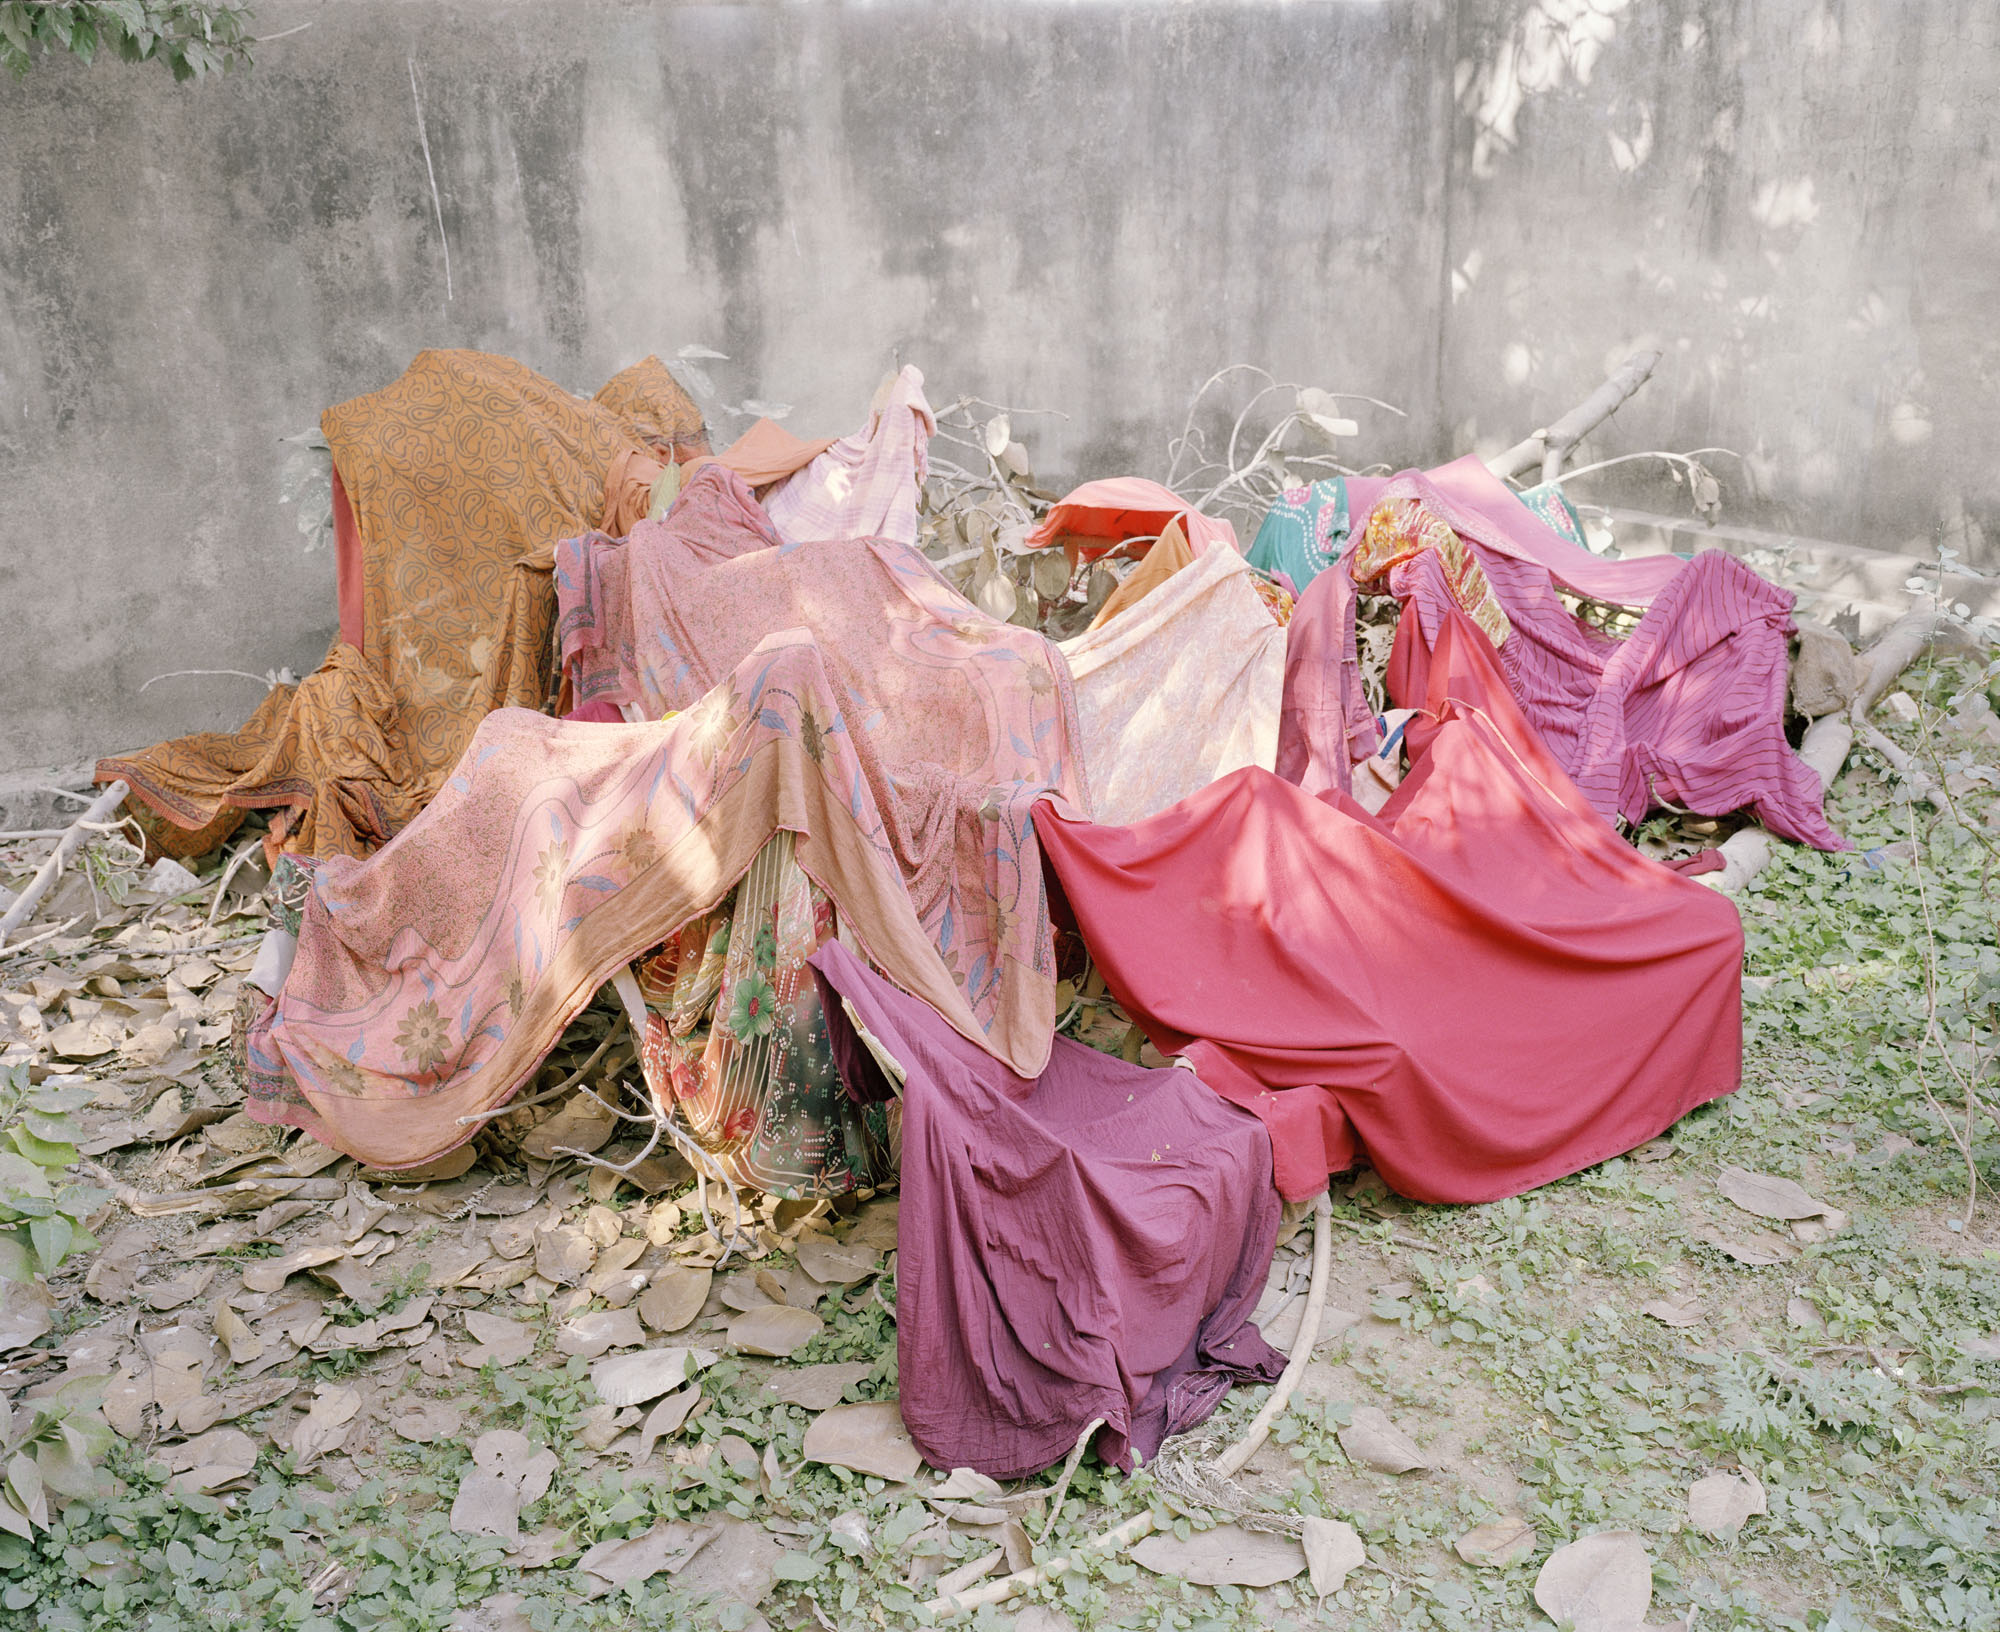 Vasantha Yogananthan, What A Princess Should Wear, 2013, Archival Inkjet Print on Canson Print Making Rag, 64 x 81 cm. Courtesy of Jhaveri Contemporary.